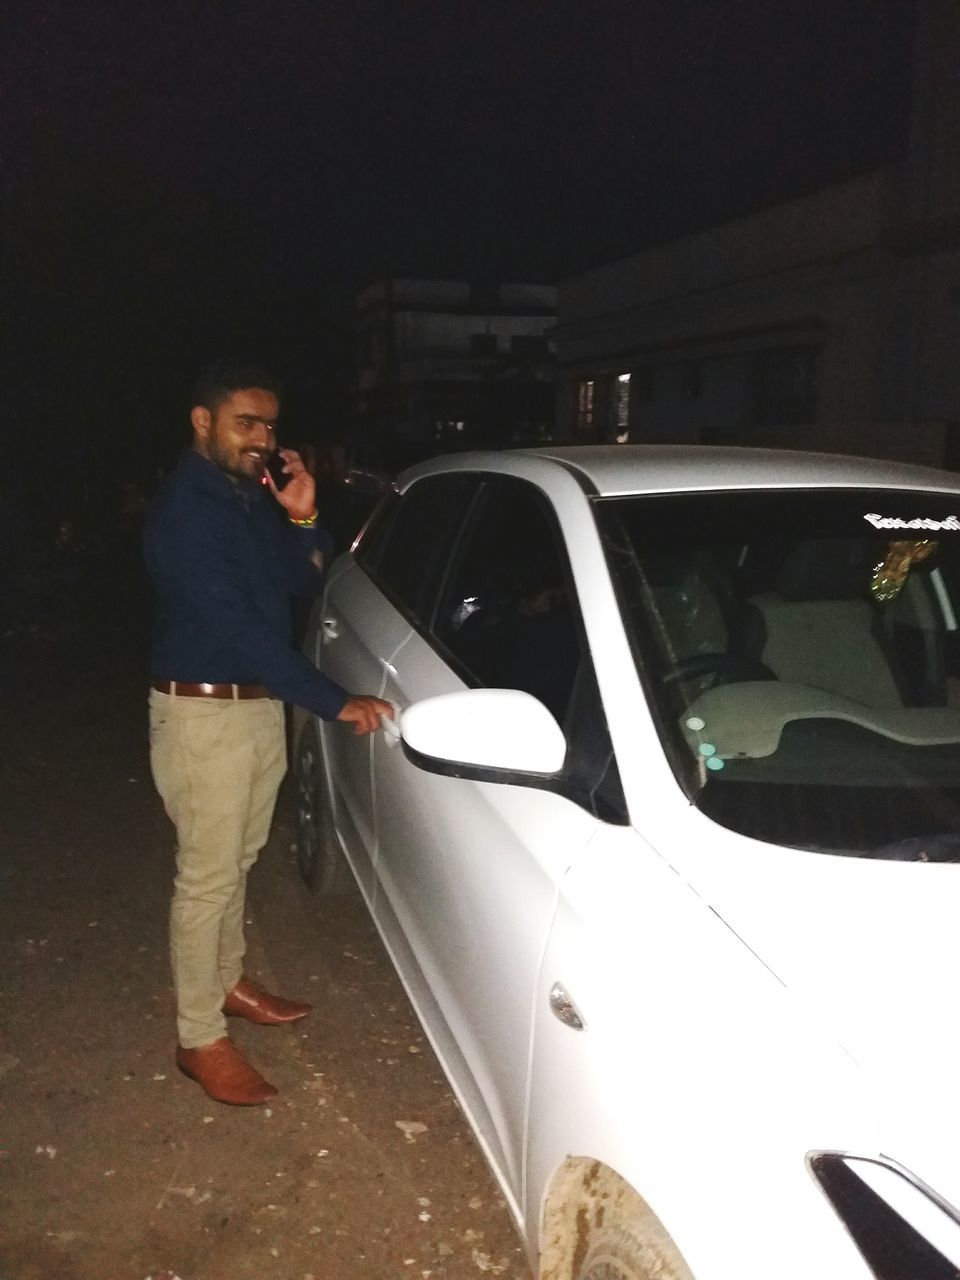 car, transportation, standing, real people, land vehicle, two people, full length, outdoors, night, men, technology, young adult, people